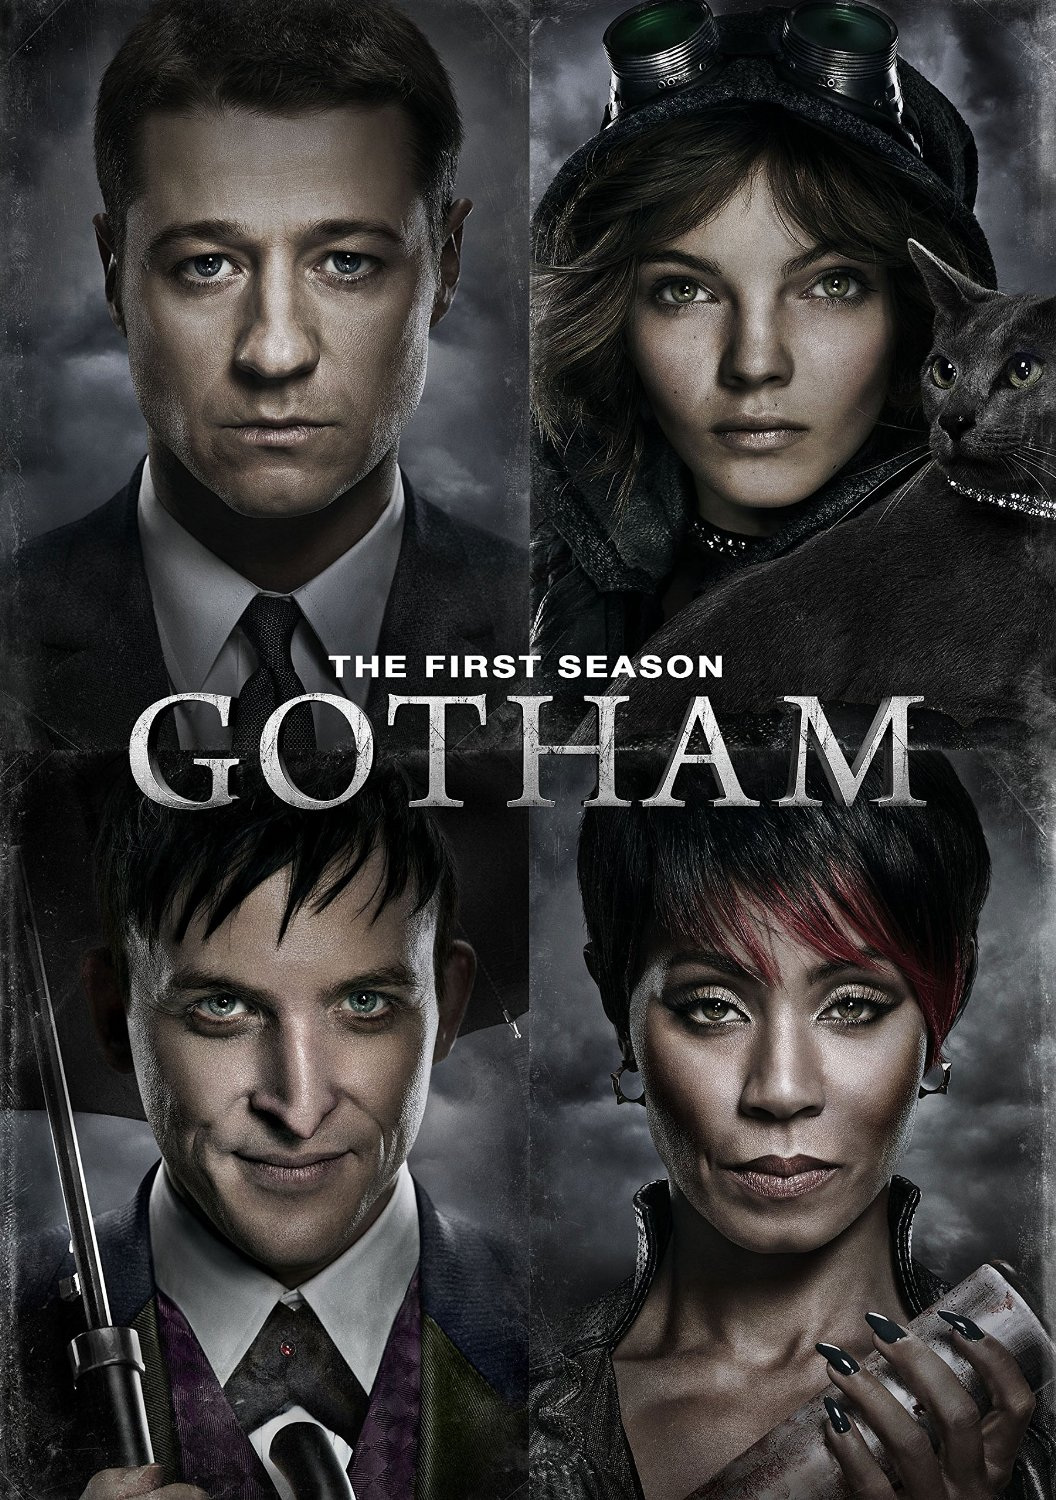 Gotham 1ª Temporada (2015) WEB-DL 720p Dual Áudio Torrent